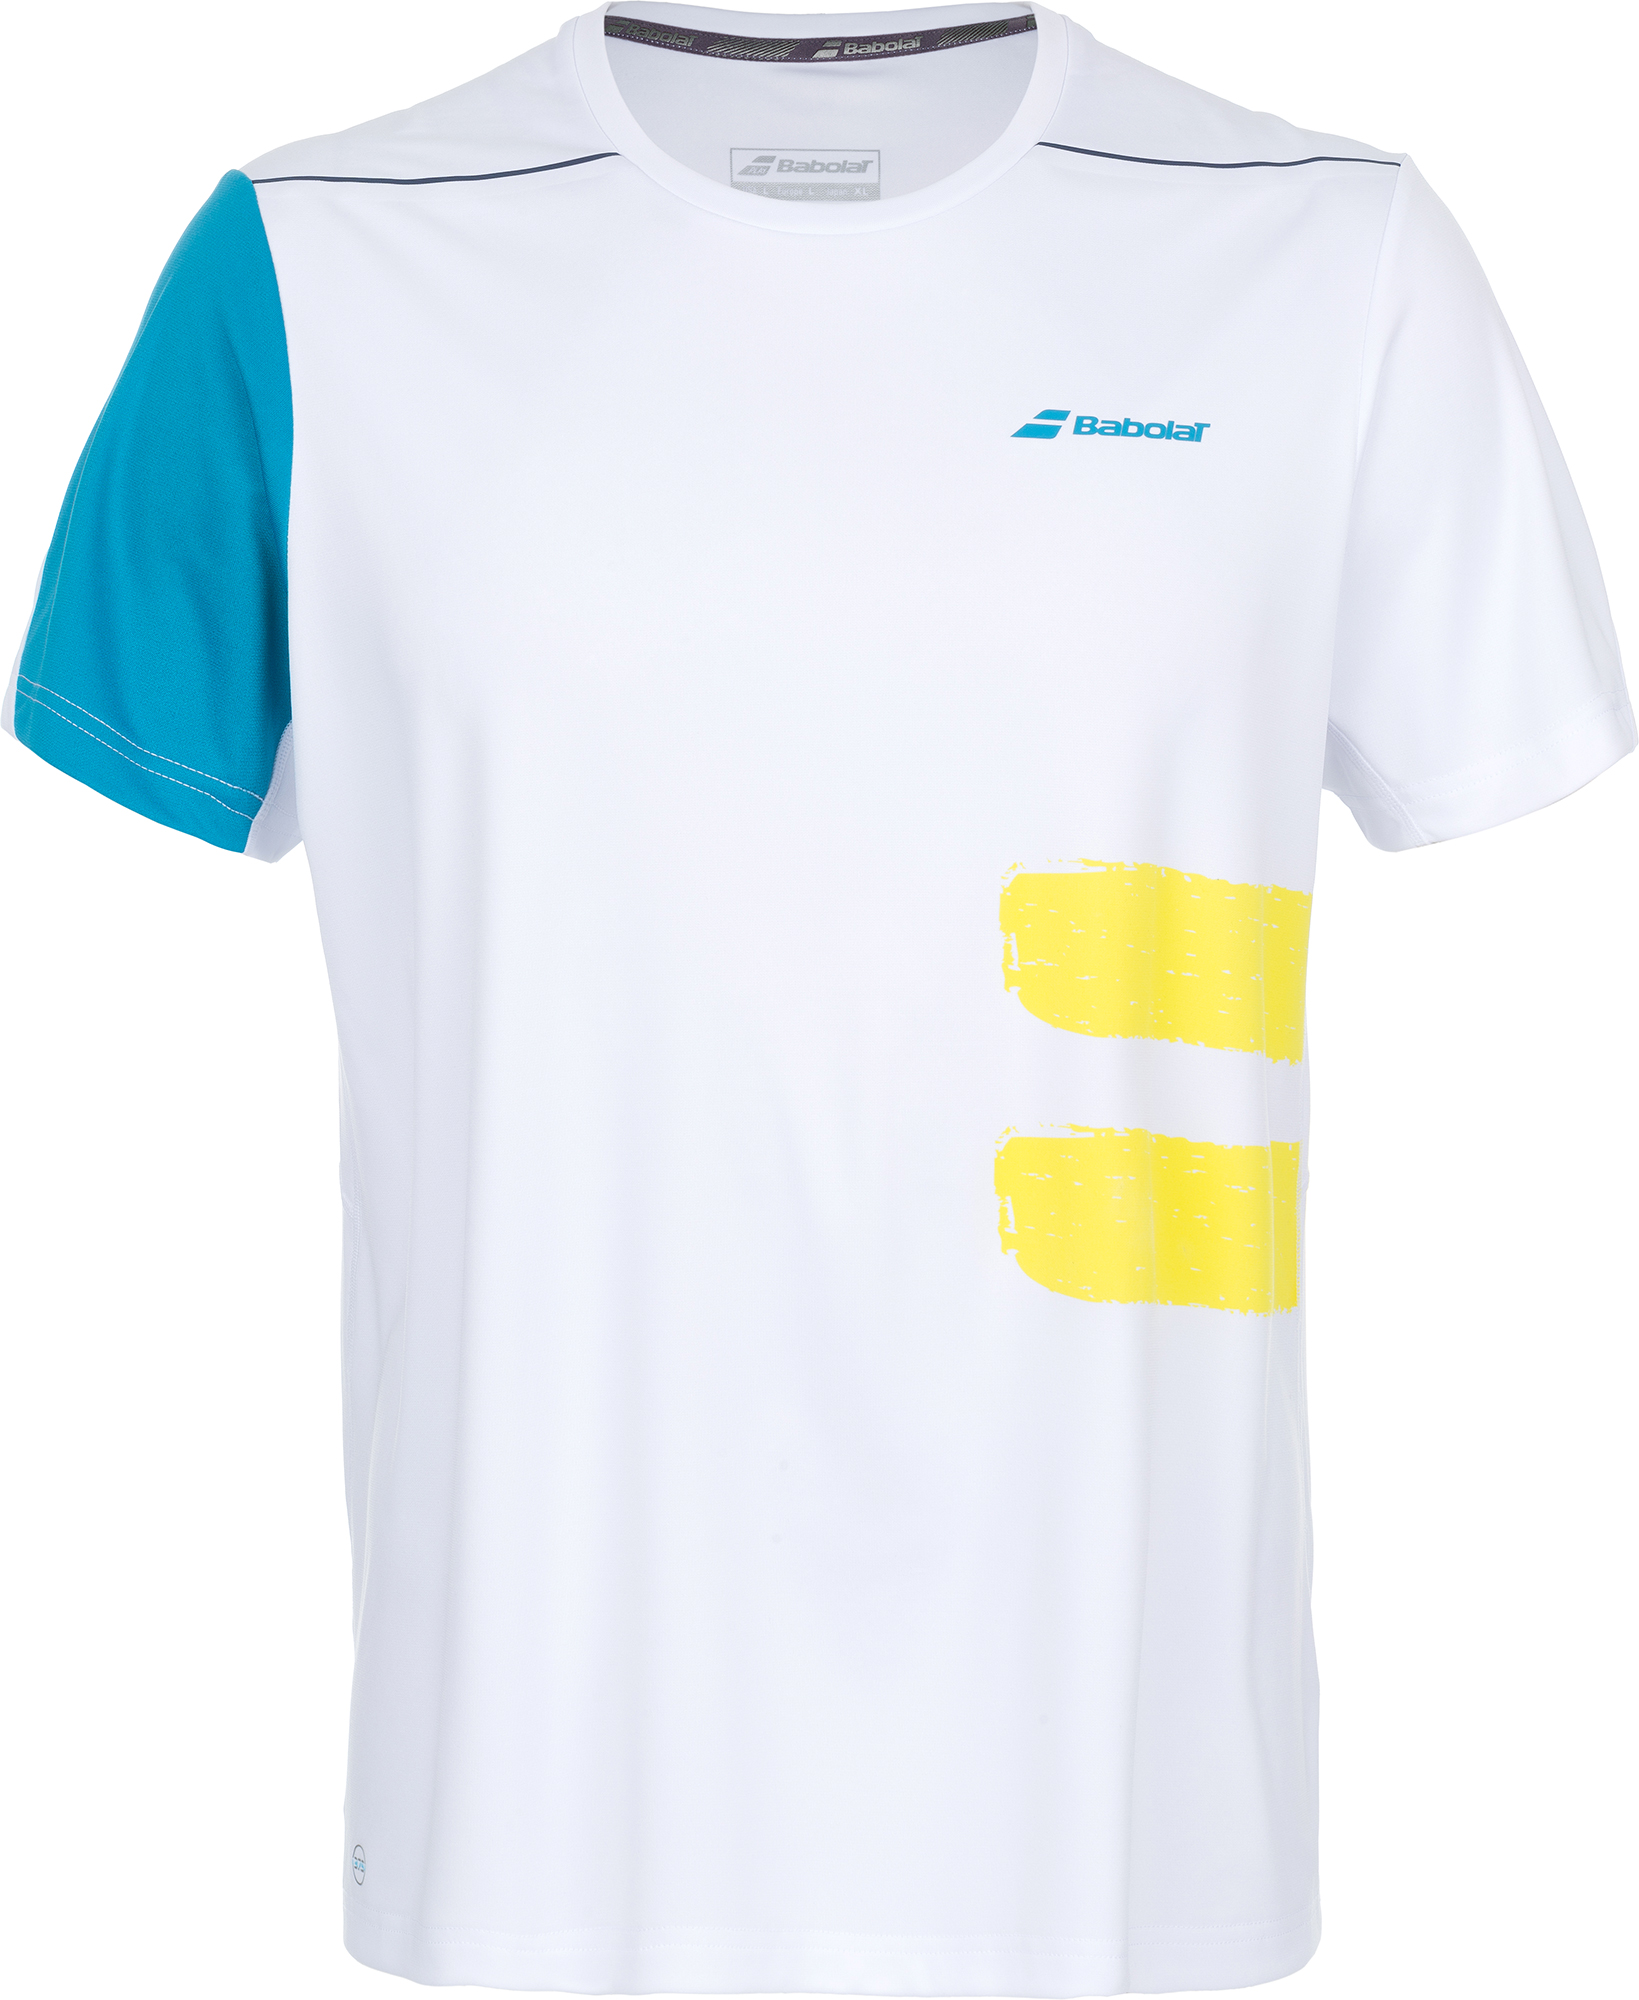 Babolat Футболка мужская Babolat Perf Crew Neck Tee, размер 50 square neck rib knit crop tee